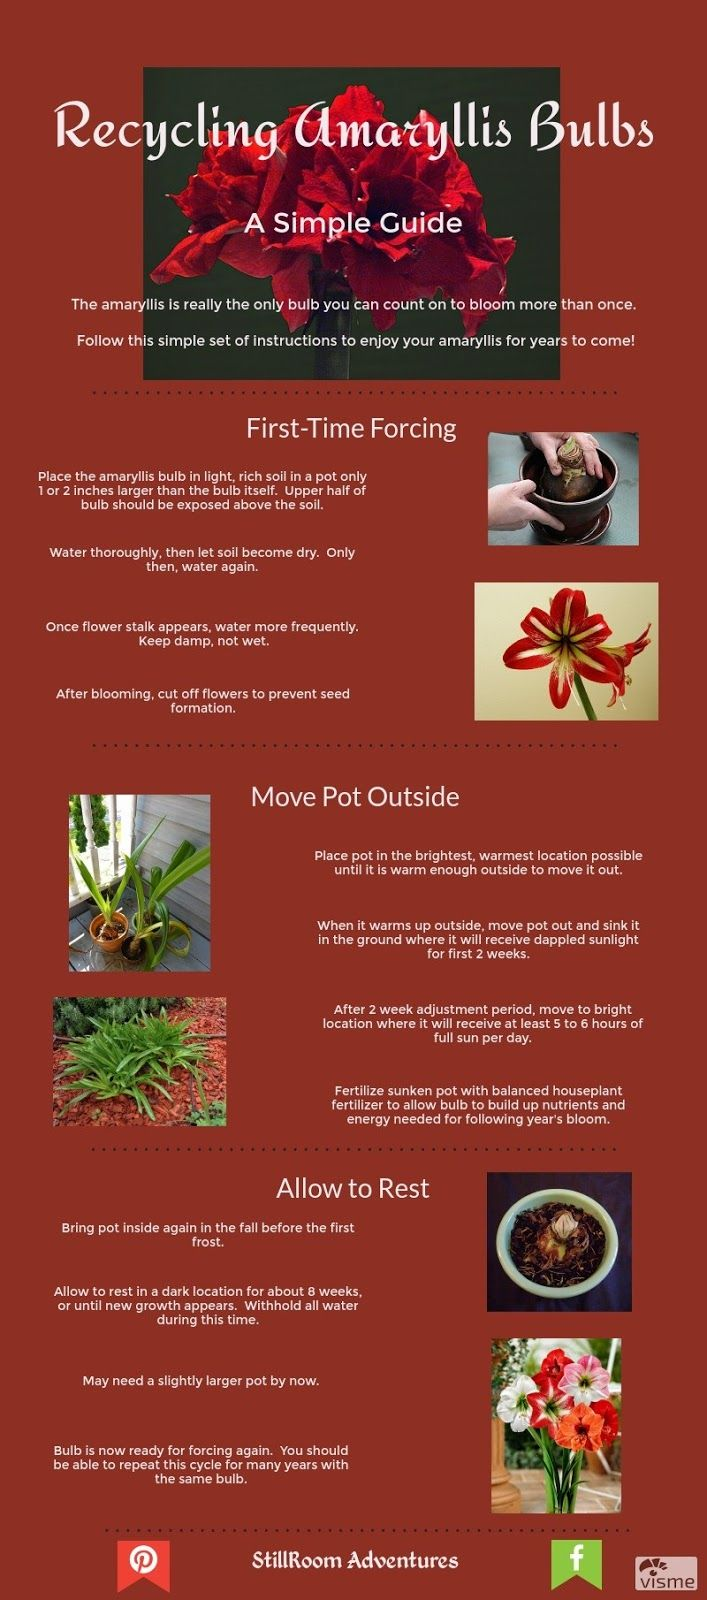 Recycling Amaryllis Bulbs for Blooms Year after Year:  A Simple Guide:  StillRoom Adventures:  The amaryllis is really the only forced bulb you can bloom more than once.  Click to through for instructions!